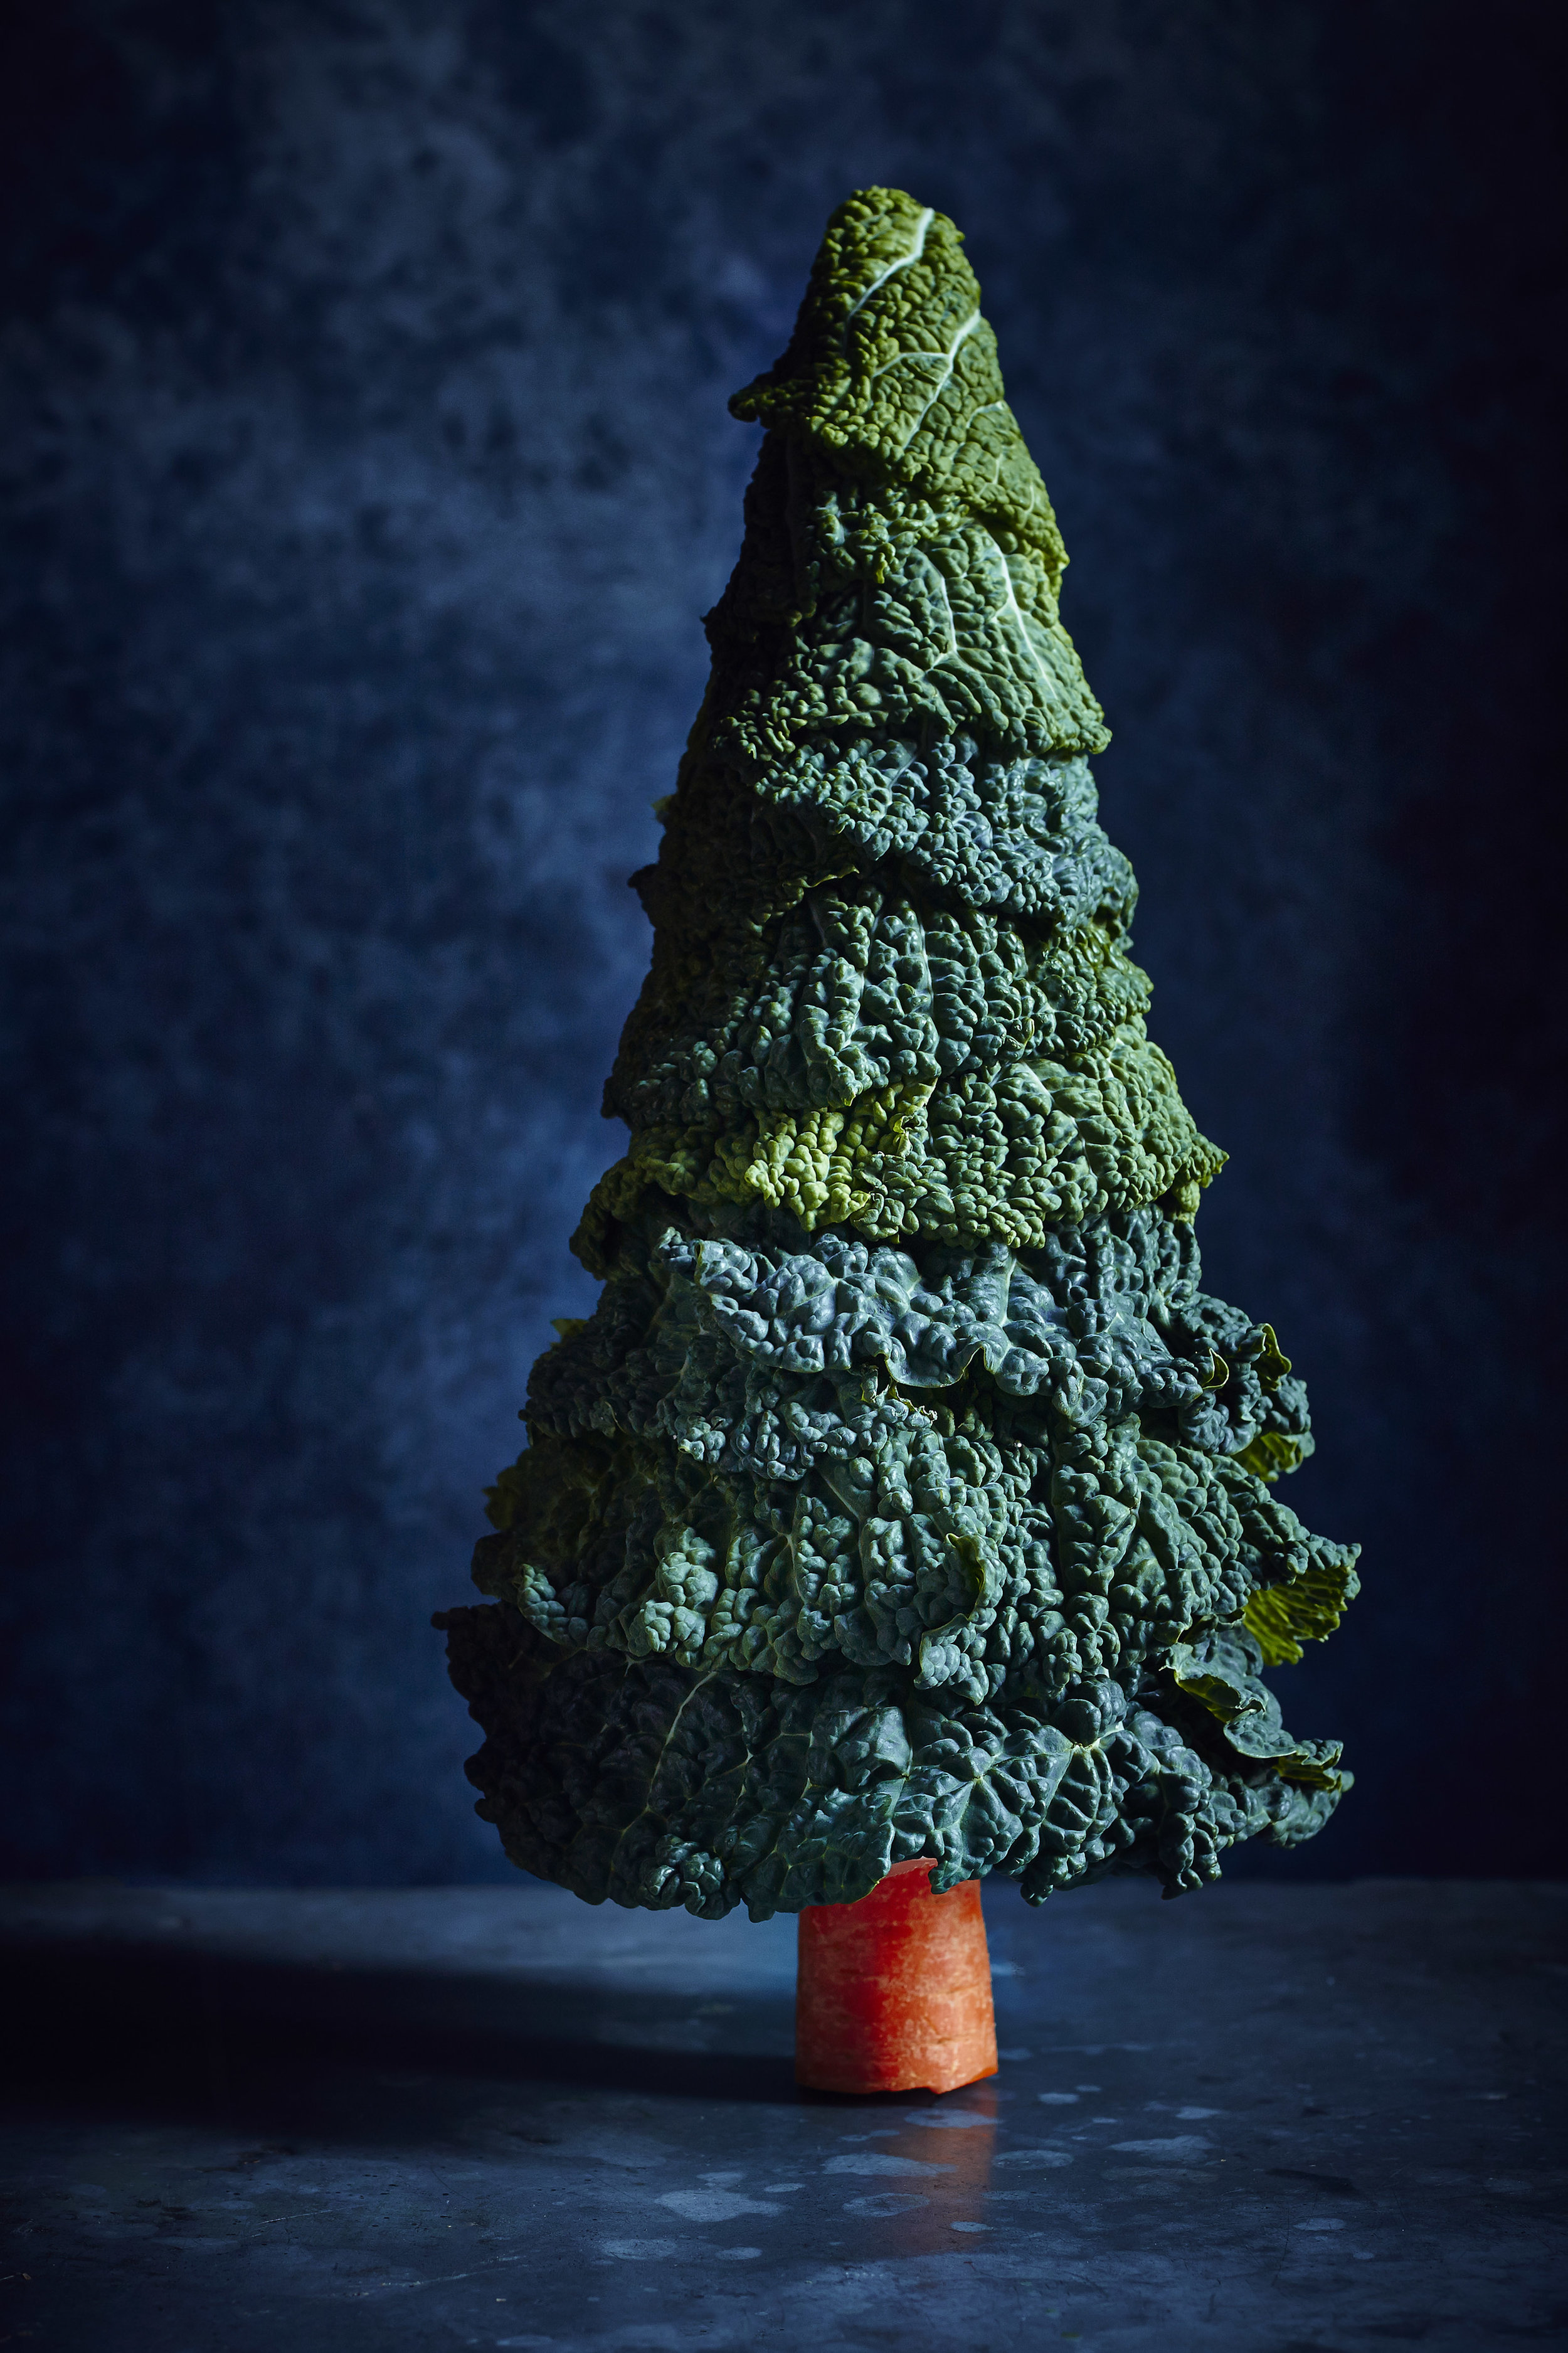 CabbageChristmasTree.jpg